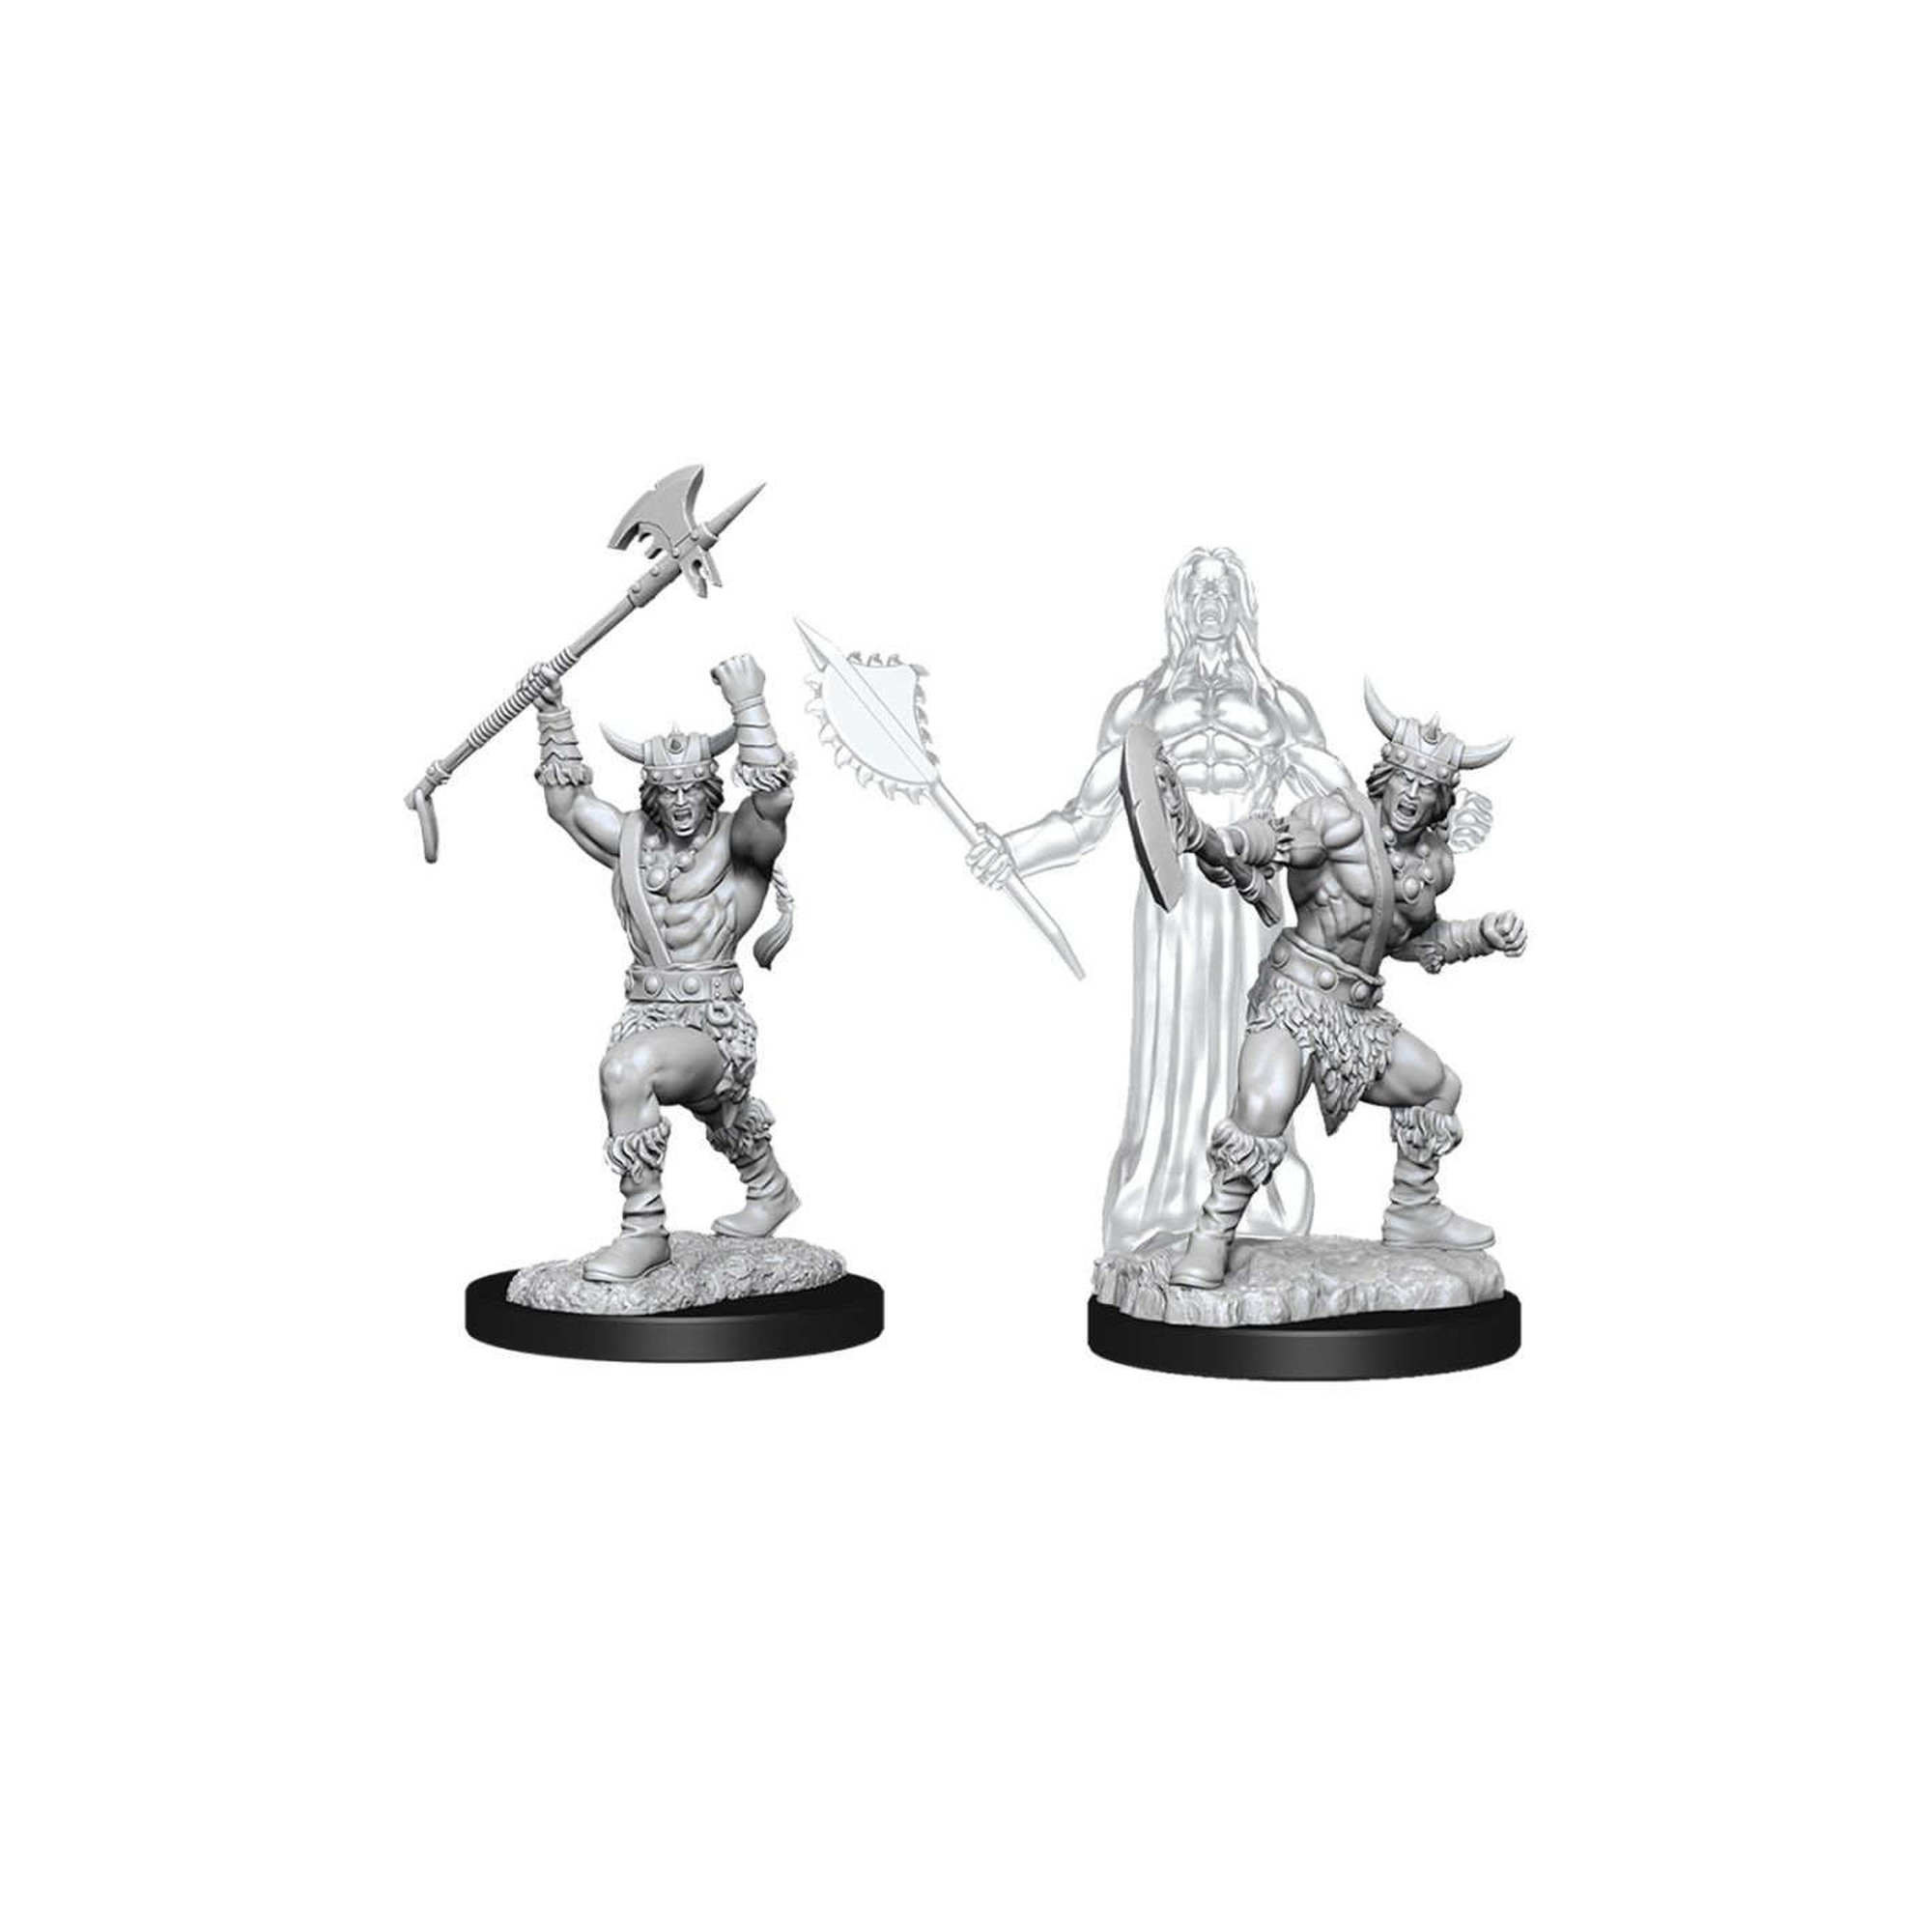 Wizkids Games DnD Unpainted Minis WV11 Male Human Barbarian